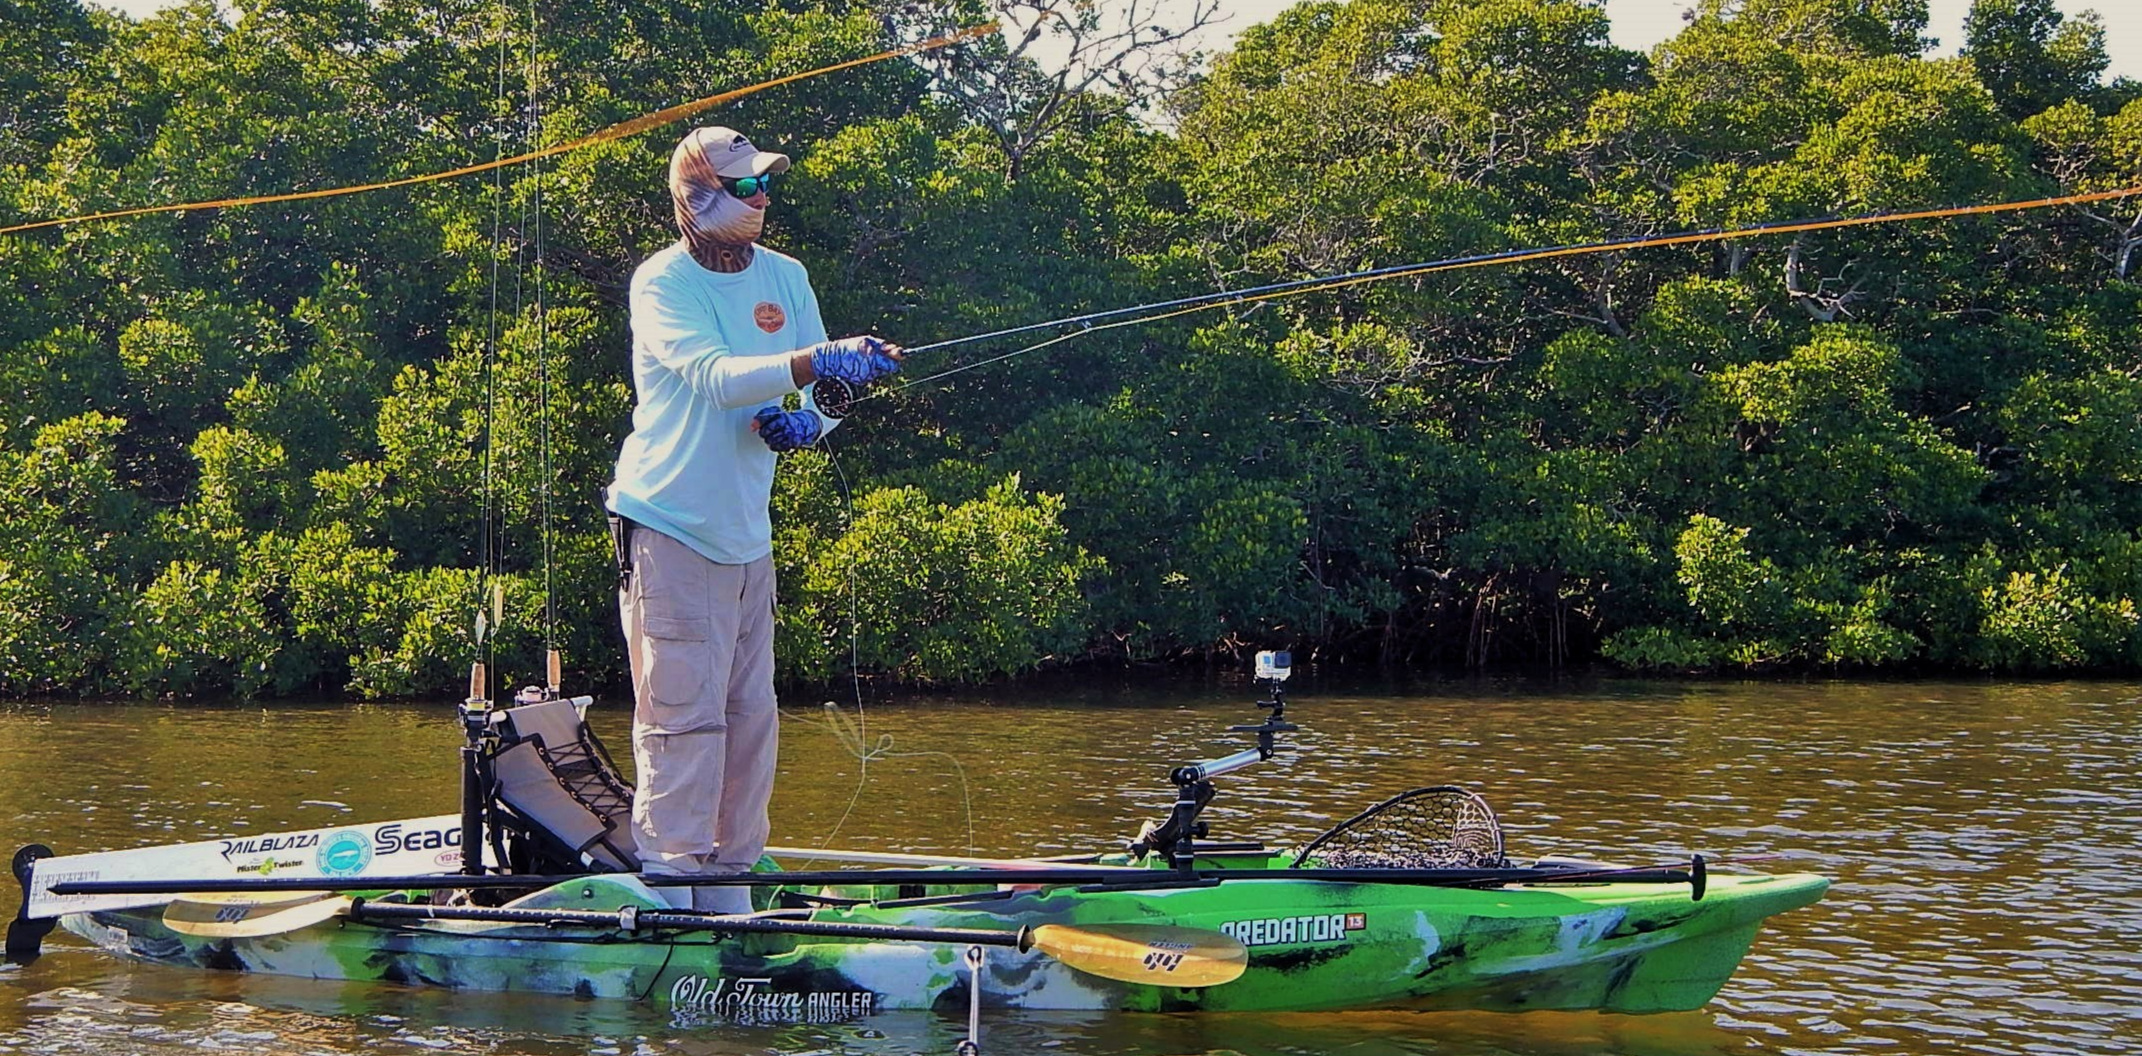 If you like or are interested in kayak fishing and/or fishing the gulf coast and inner waters of Florida, Eric is the Guide for you!    A little about Eric Henson:  My love for paddling and fishing began at a very young age. I grew up on a beautiful lake in DeLand, FL. My dad bought a red Old Town Canoe for us to paddle around the lake. My next door neighbor on the lake was a Pro Bass fisherman who regularly stocked our lake with all types of freshwater species. When I was 9 years old, my dad and neighbor bought me my first spinning reel for my birthday. Soon after I picked up my first fly setup. I was blessed to have this great introduction to the water at such a young age. I spent much of my childhood in that shiny red canoe paddling the lake every day, catching Largemouth Bass, Stripe Bass, Speckled Perch, and Blue Gill.  I moved to the west SW coast of Florida when I was 14 years old. I hadn't ever really done any serious saltwater fishing before that, except off of docks, beaches, and piers. We had left the canoe with the lake house when we moved. I continued fishing from land and from friends' boats, but I kept thinking about how fun it would be to get back to paddling around catching fish. There were so many places that I wanted to fish that I couldn't quite get to by boat. As soon as I was old enough to get my first truck, I was ready to get something to paddle! Kayaks were just starting to become popular for fishing, so, I invested in my first kayak. Man, when I got in the water with that thing, I felt invincible—the unlimited places I was able to go with it. I can't even begin to tell you how many fish that I caught out of that yak.  My favorite type of fish to target in SW Florida are redfish, snook, trout, and tarpon. Once I learned a lot of their behaviors and patterns, I starting thinking about my next step. I have always had a competitive nature so, I started entering kayak fishing tournaments. Kayak fishing tournaments are a true test for an individu